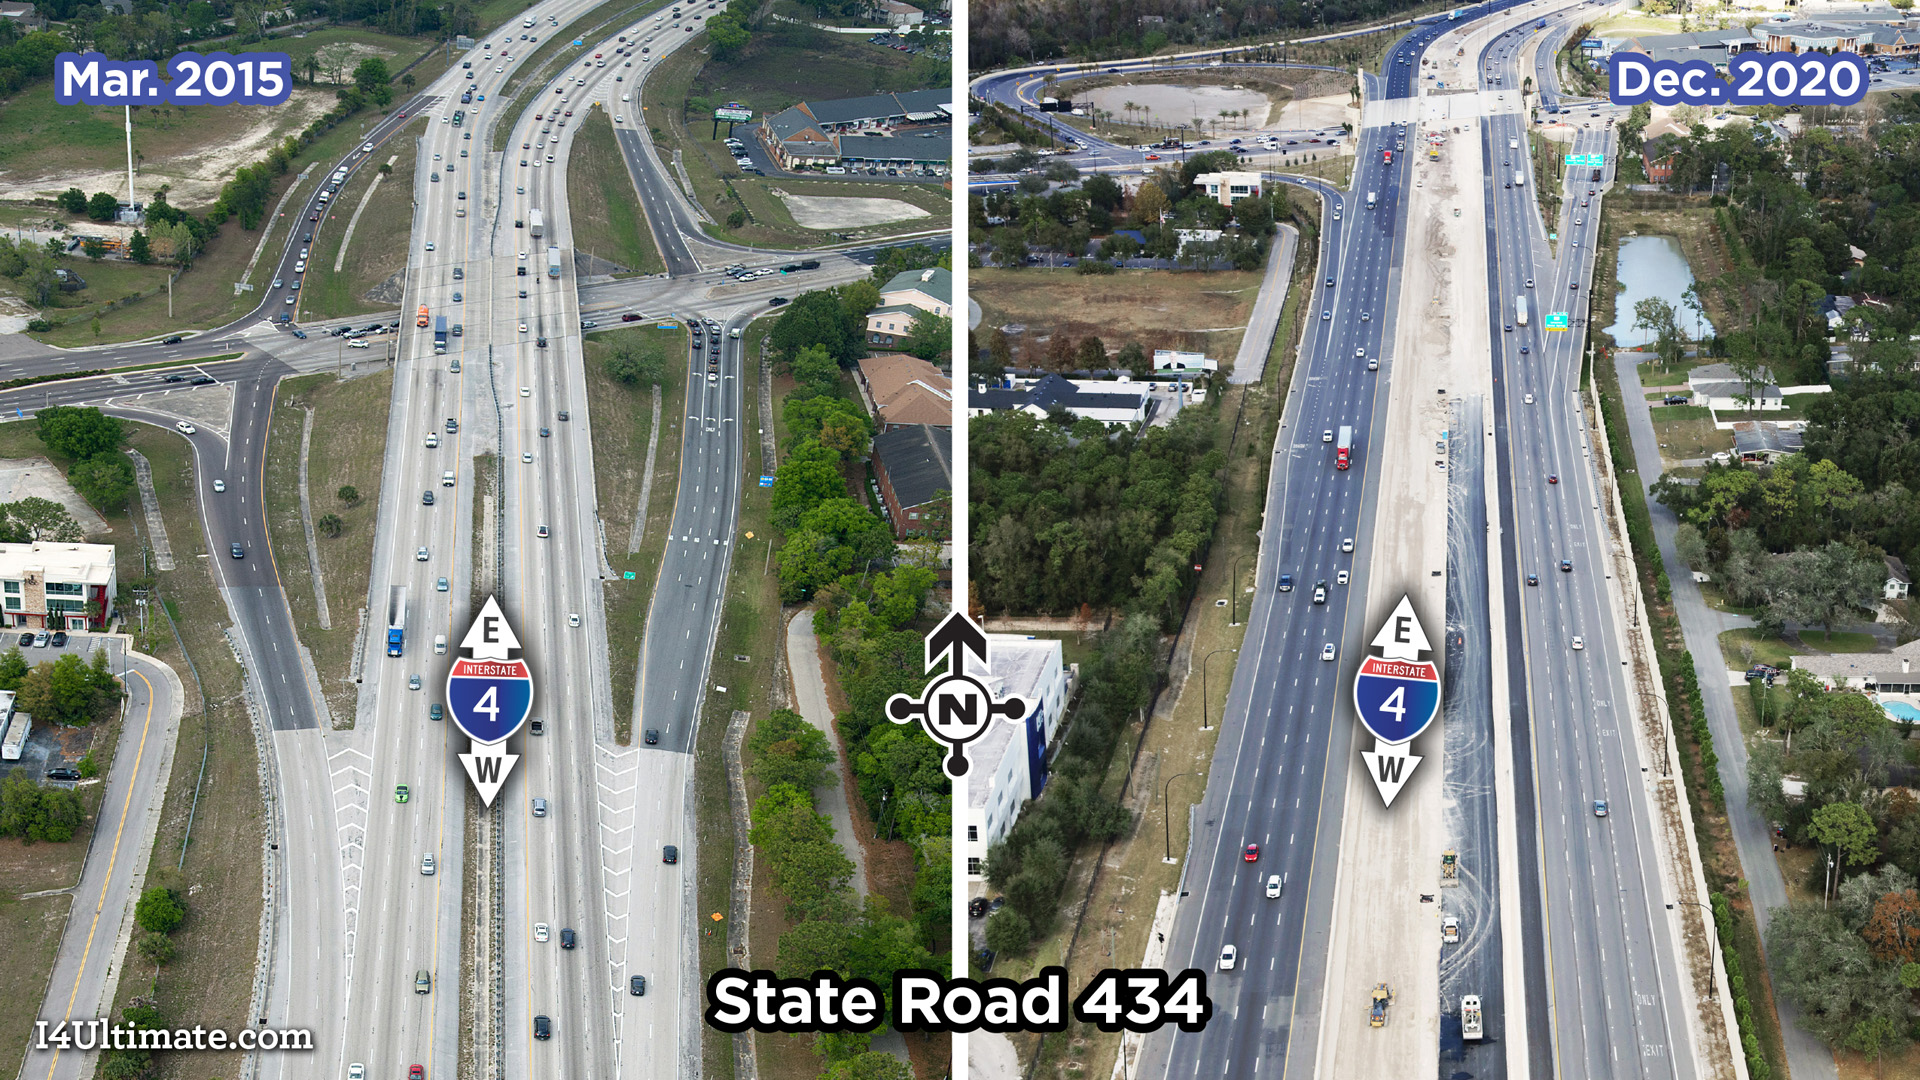 4738-I4Ultimate-GUL-campaign-images-20210212-23-State-Road-434